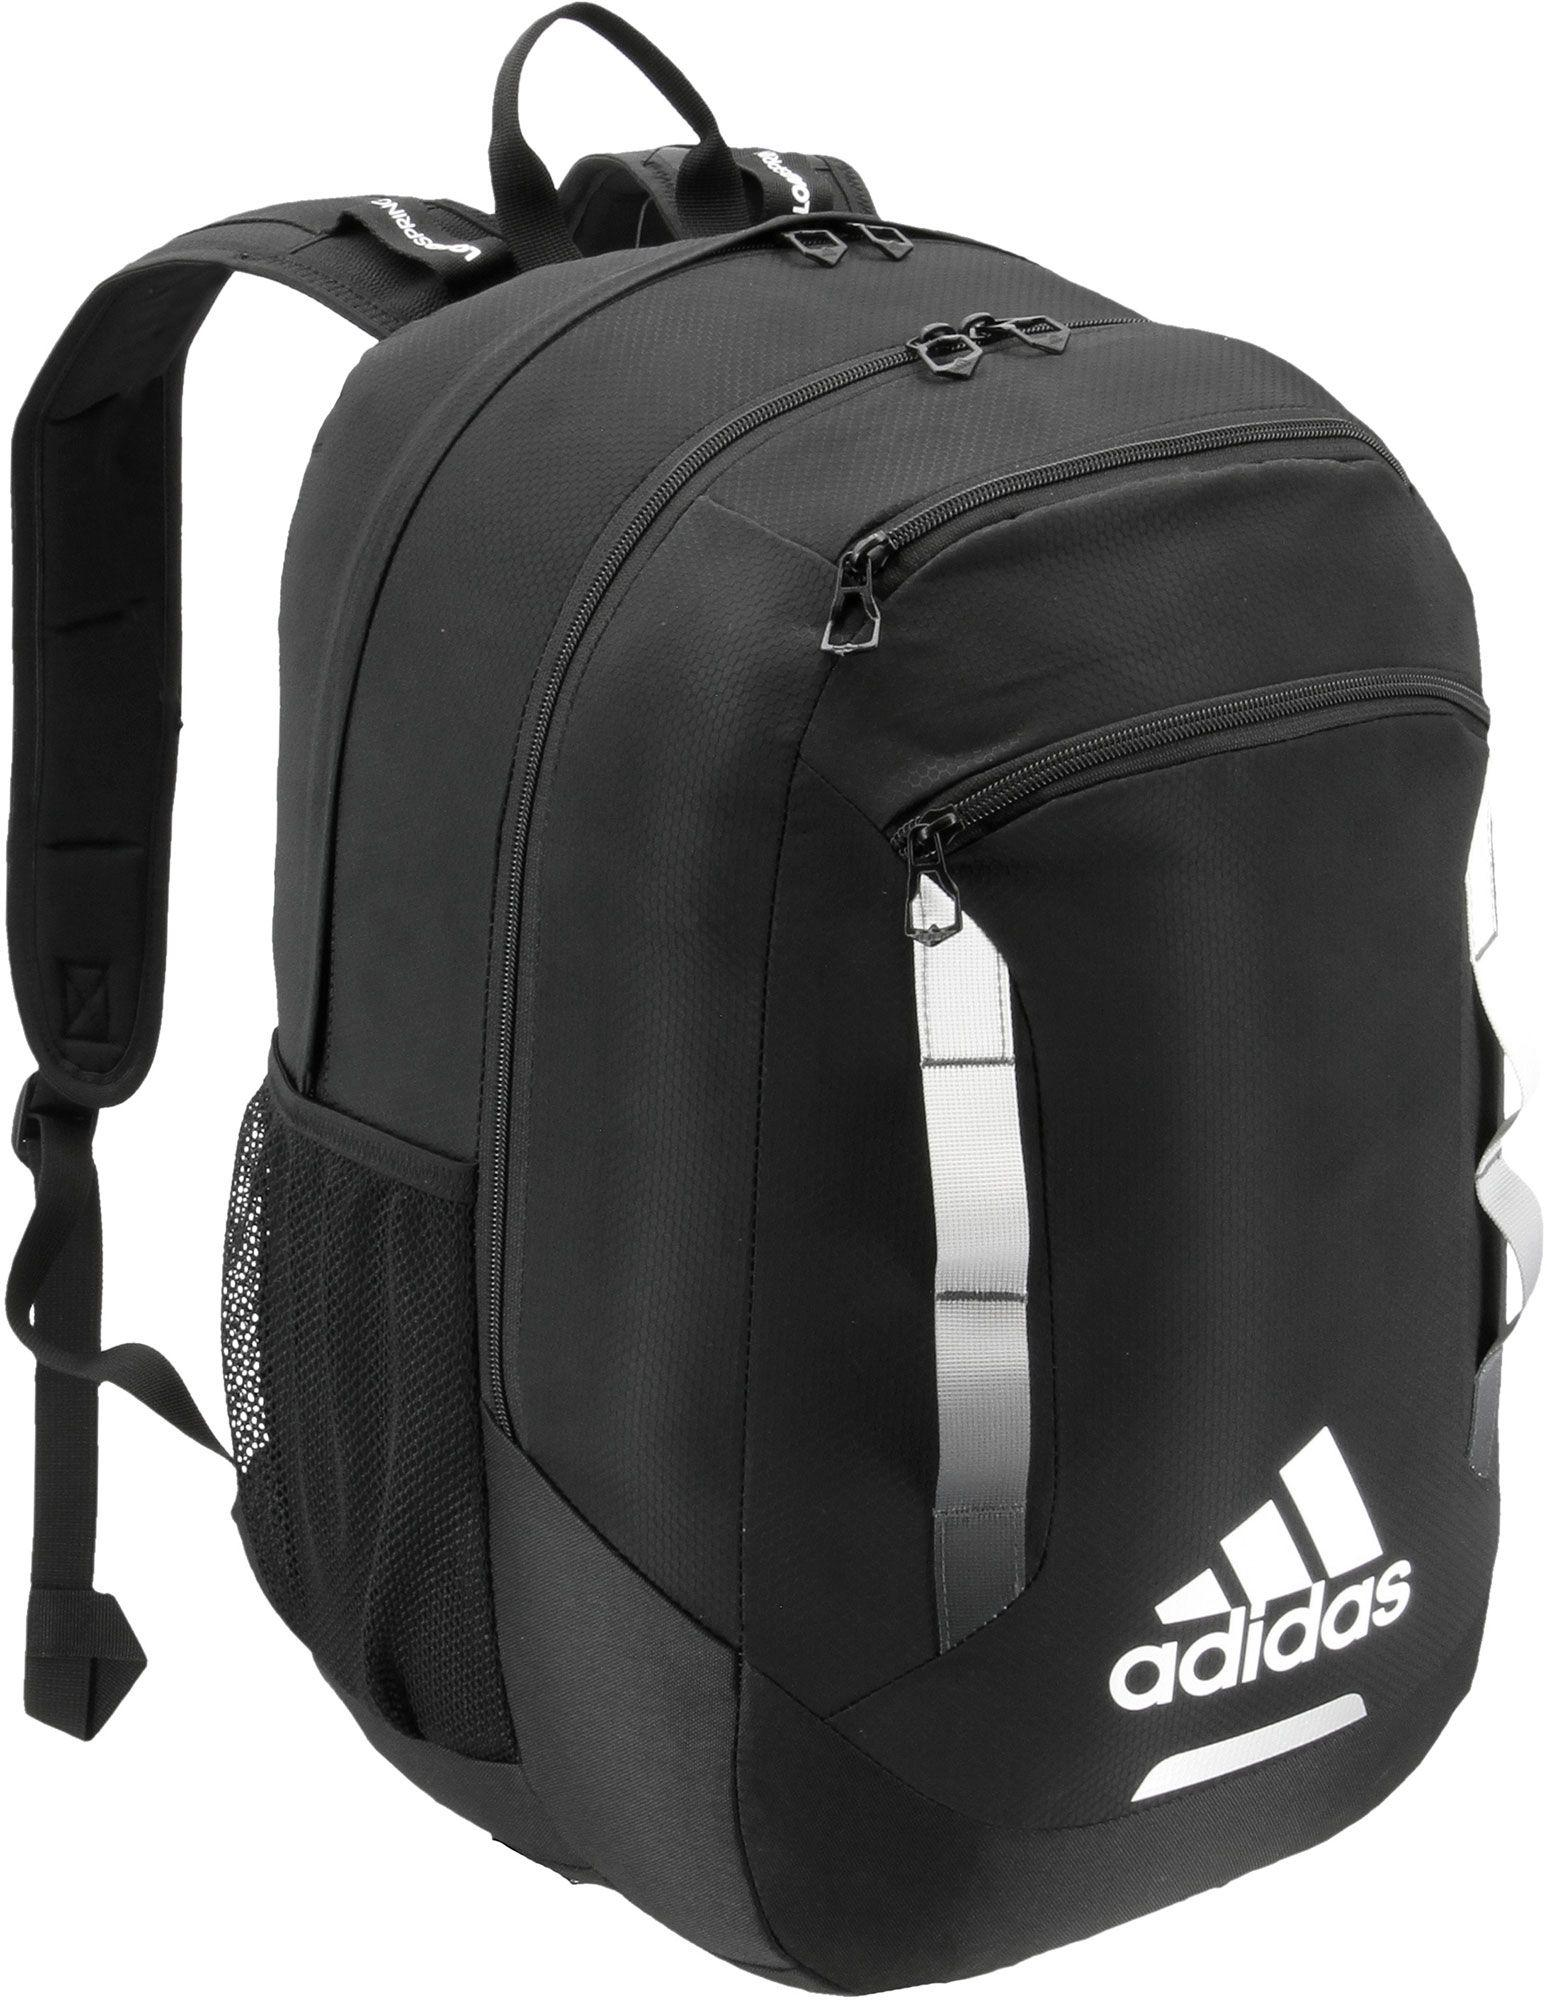 ba7aa485a9 Lyst - adidas Rival Xl Backpack in Black for Men